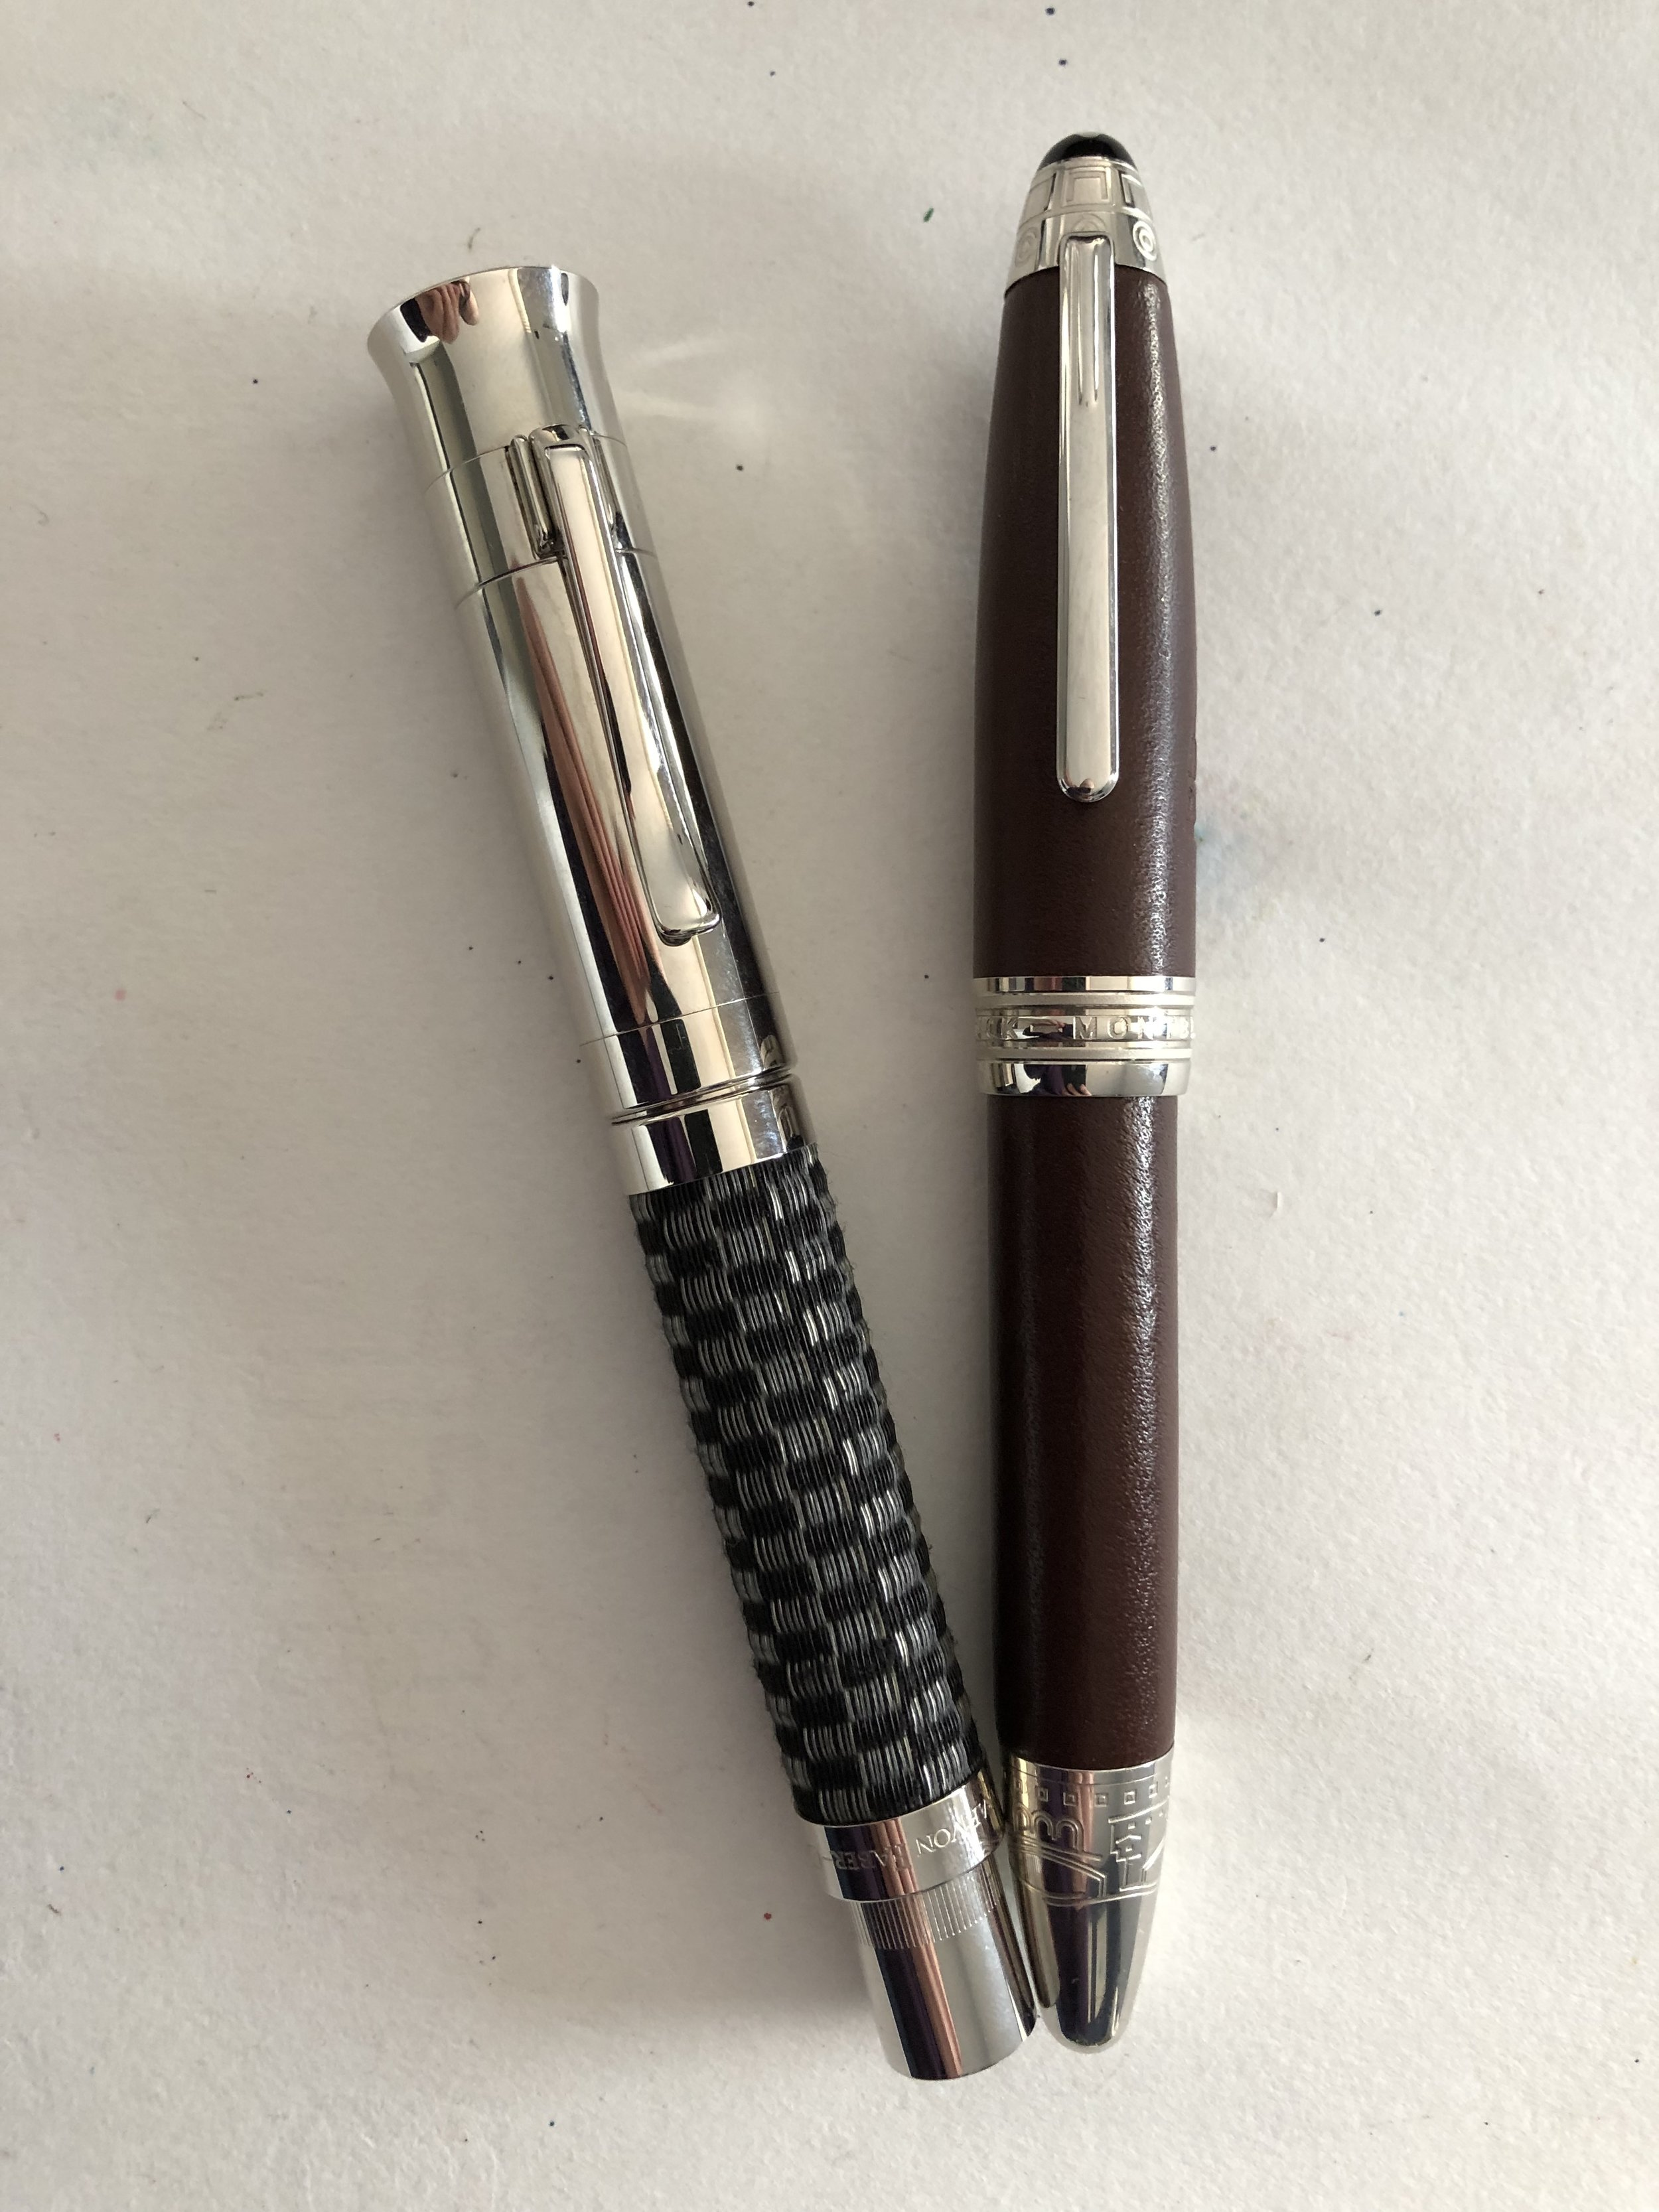 Graf von Faber-Castell Pen of the Year 2009 and Montblanc Firenze.